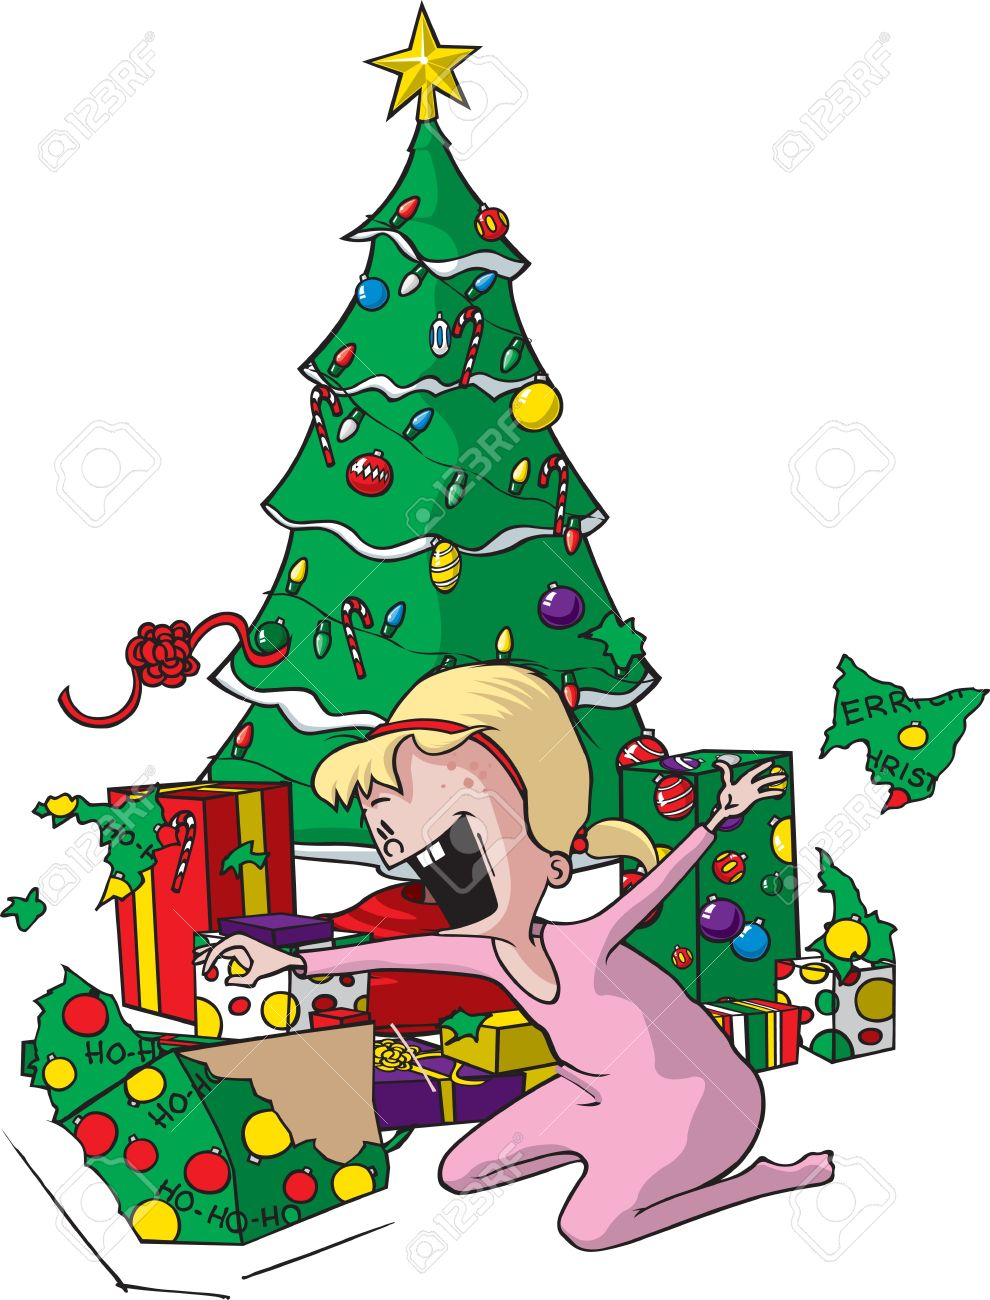 Cartoon Of An Excited Girl On Christmas Morning Layered Vector Royalty Free Cliparts Vectors And Stock Illustration Image 16493951 Even if it is not real, but artificial or even virtual. cartoon of an excited girl on christmas morning layered vector